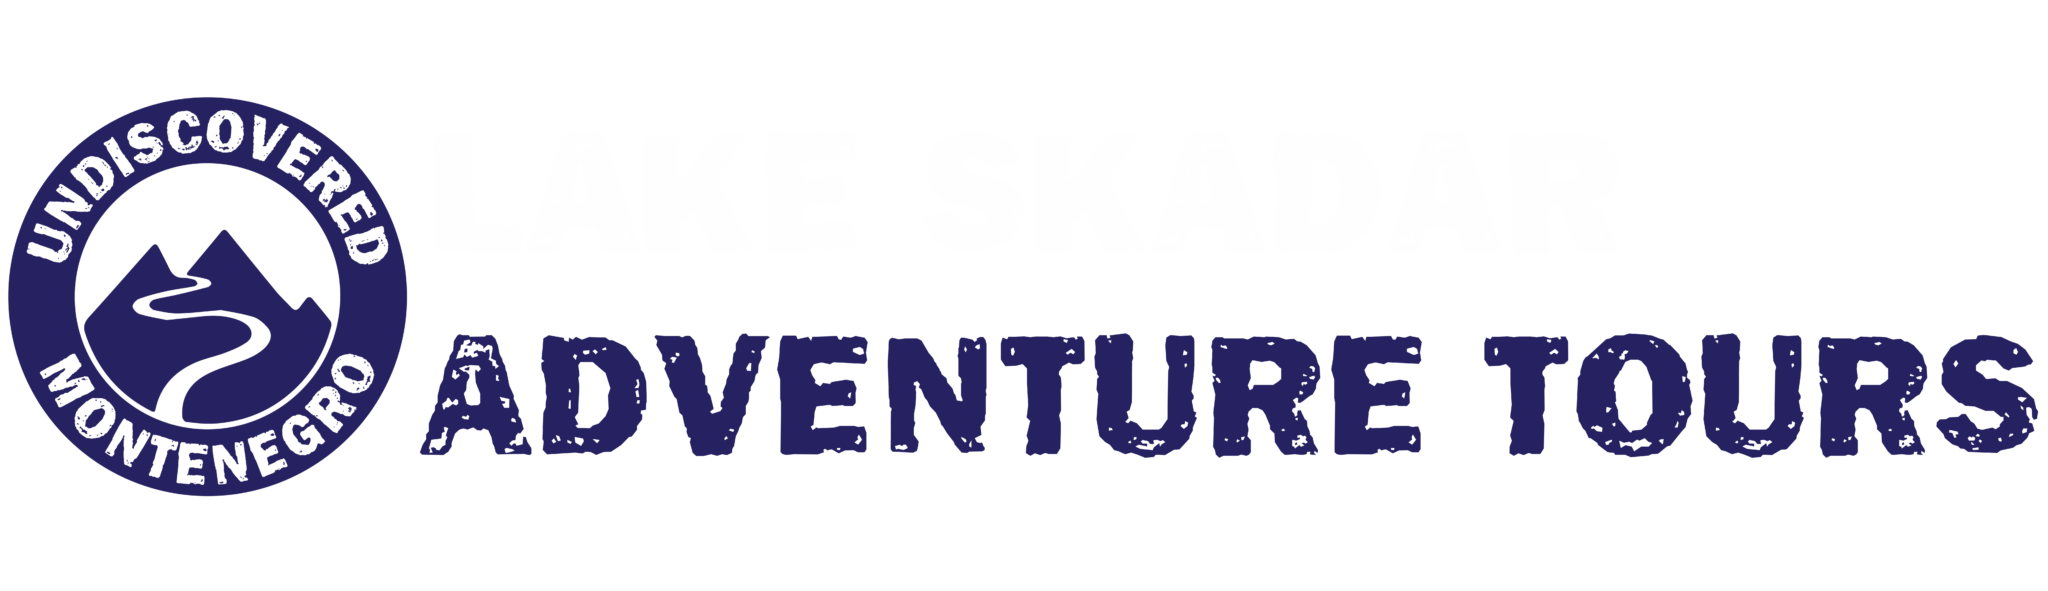 Lake Skadar Adventure Tours